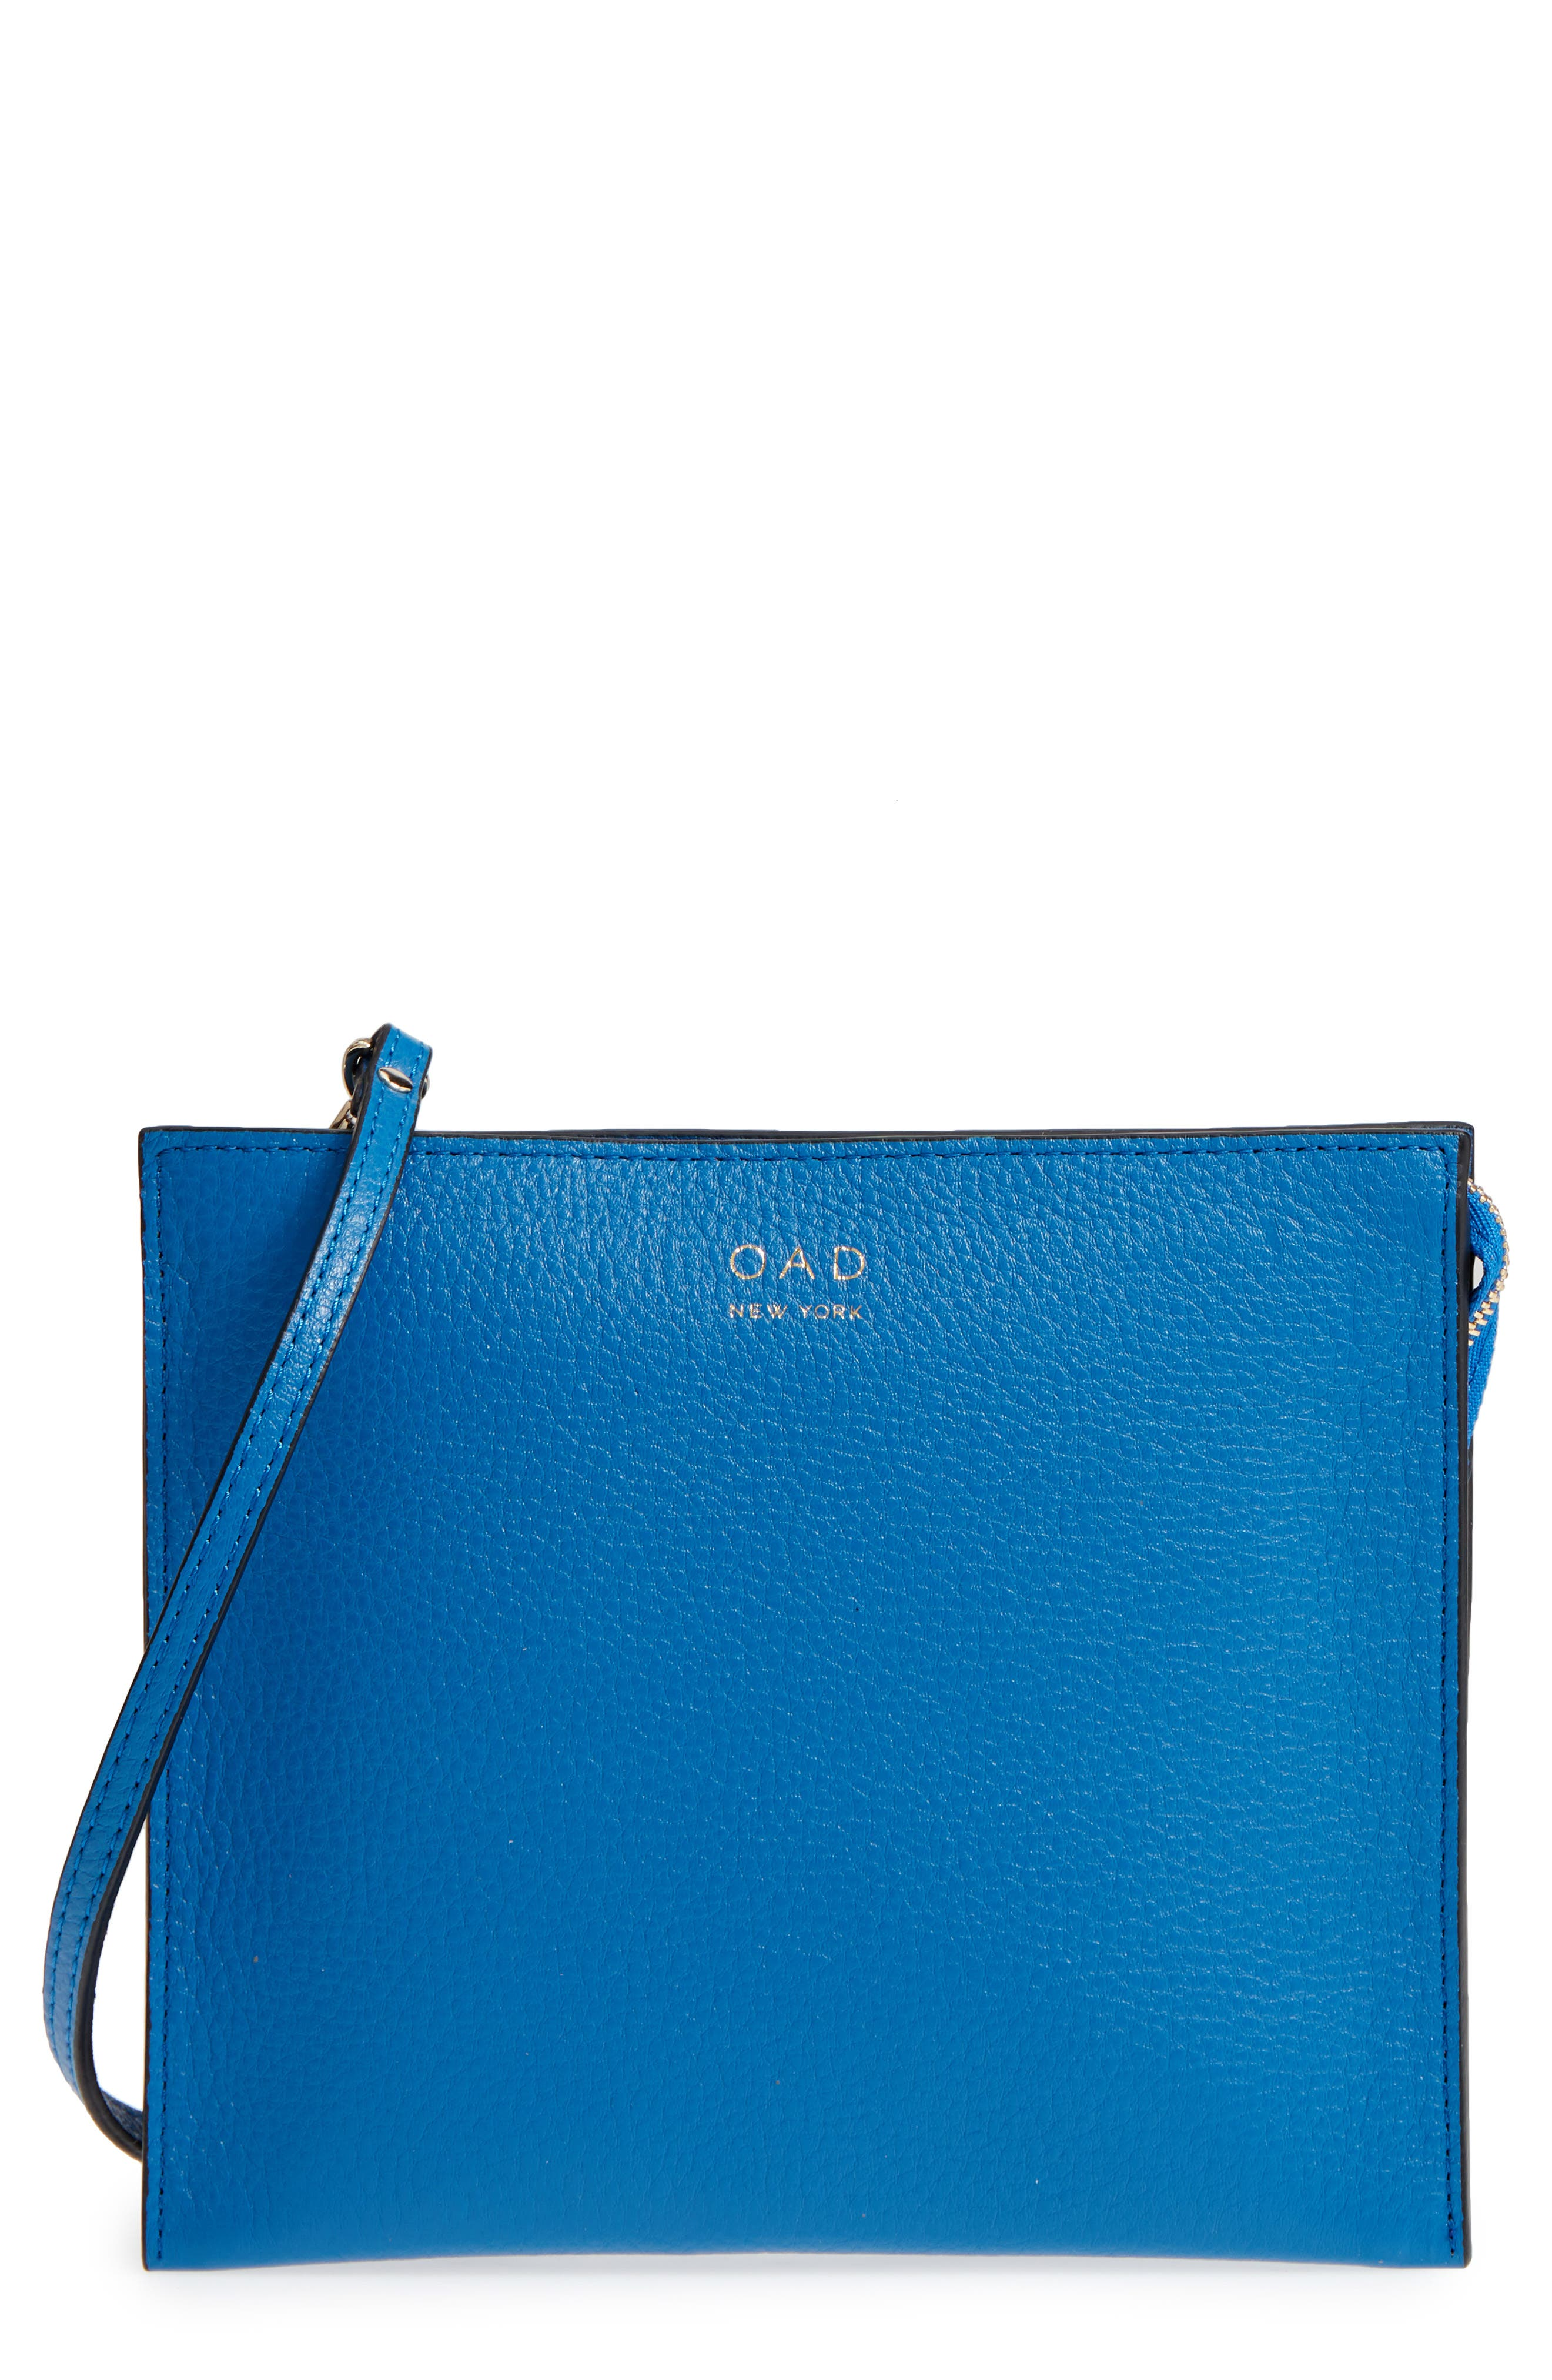 Dual Slim Leather Crossbody Clutch,                             Main thumbnail 1, color,                             Sea Blue